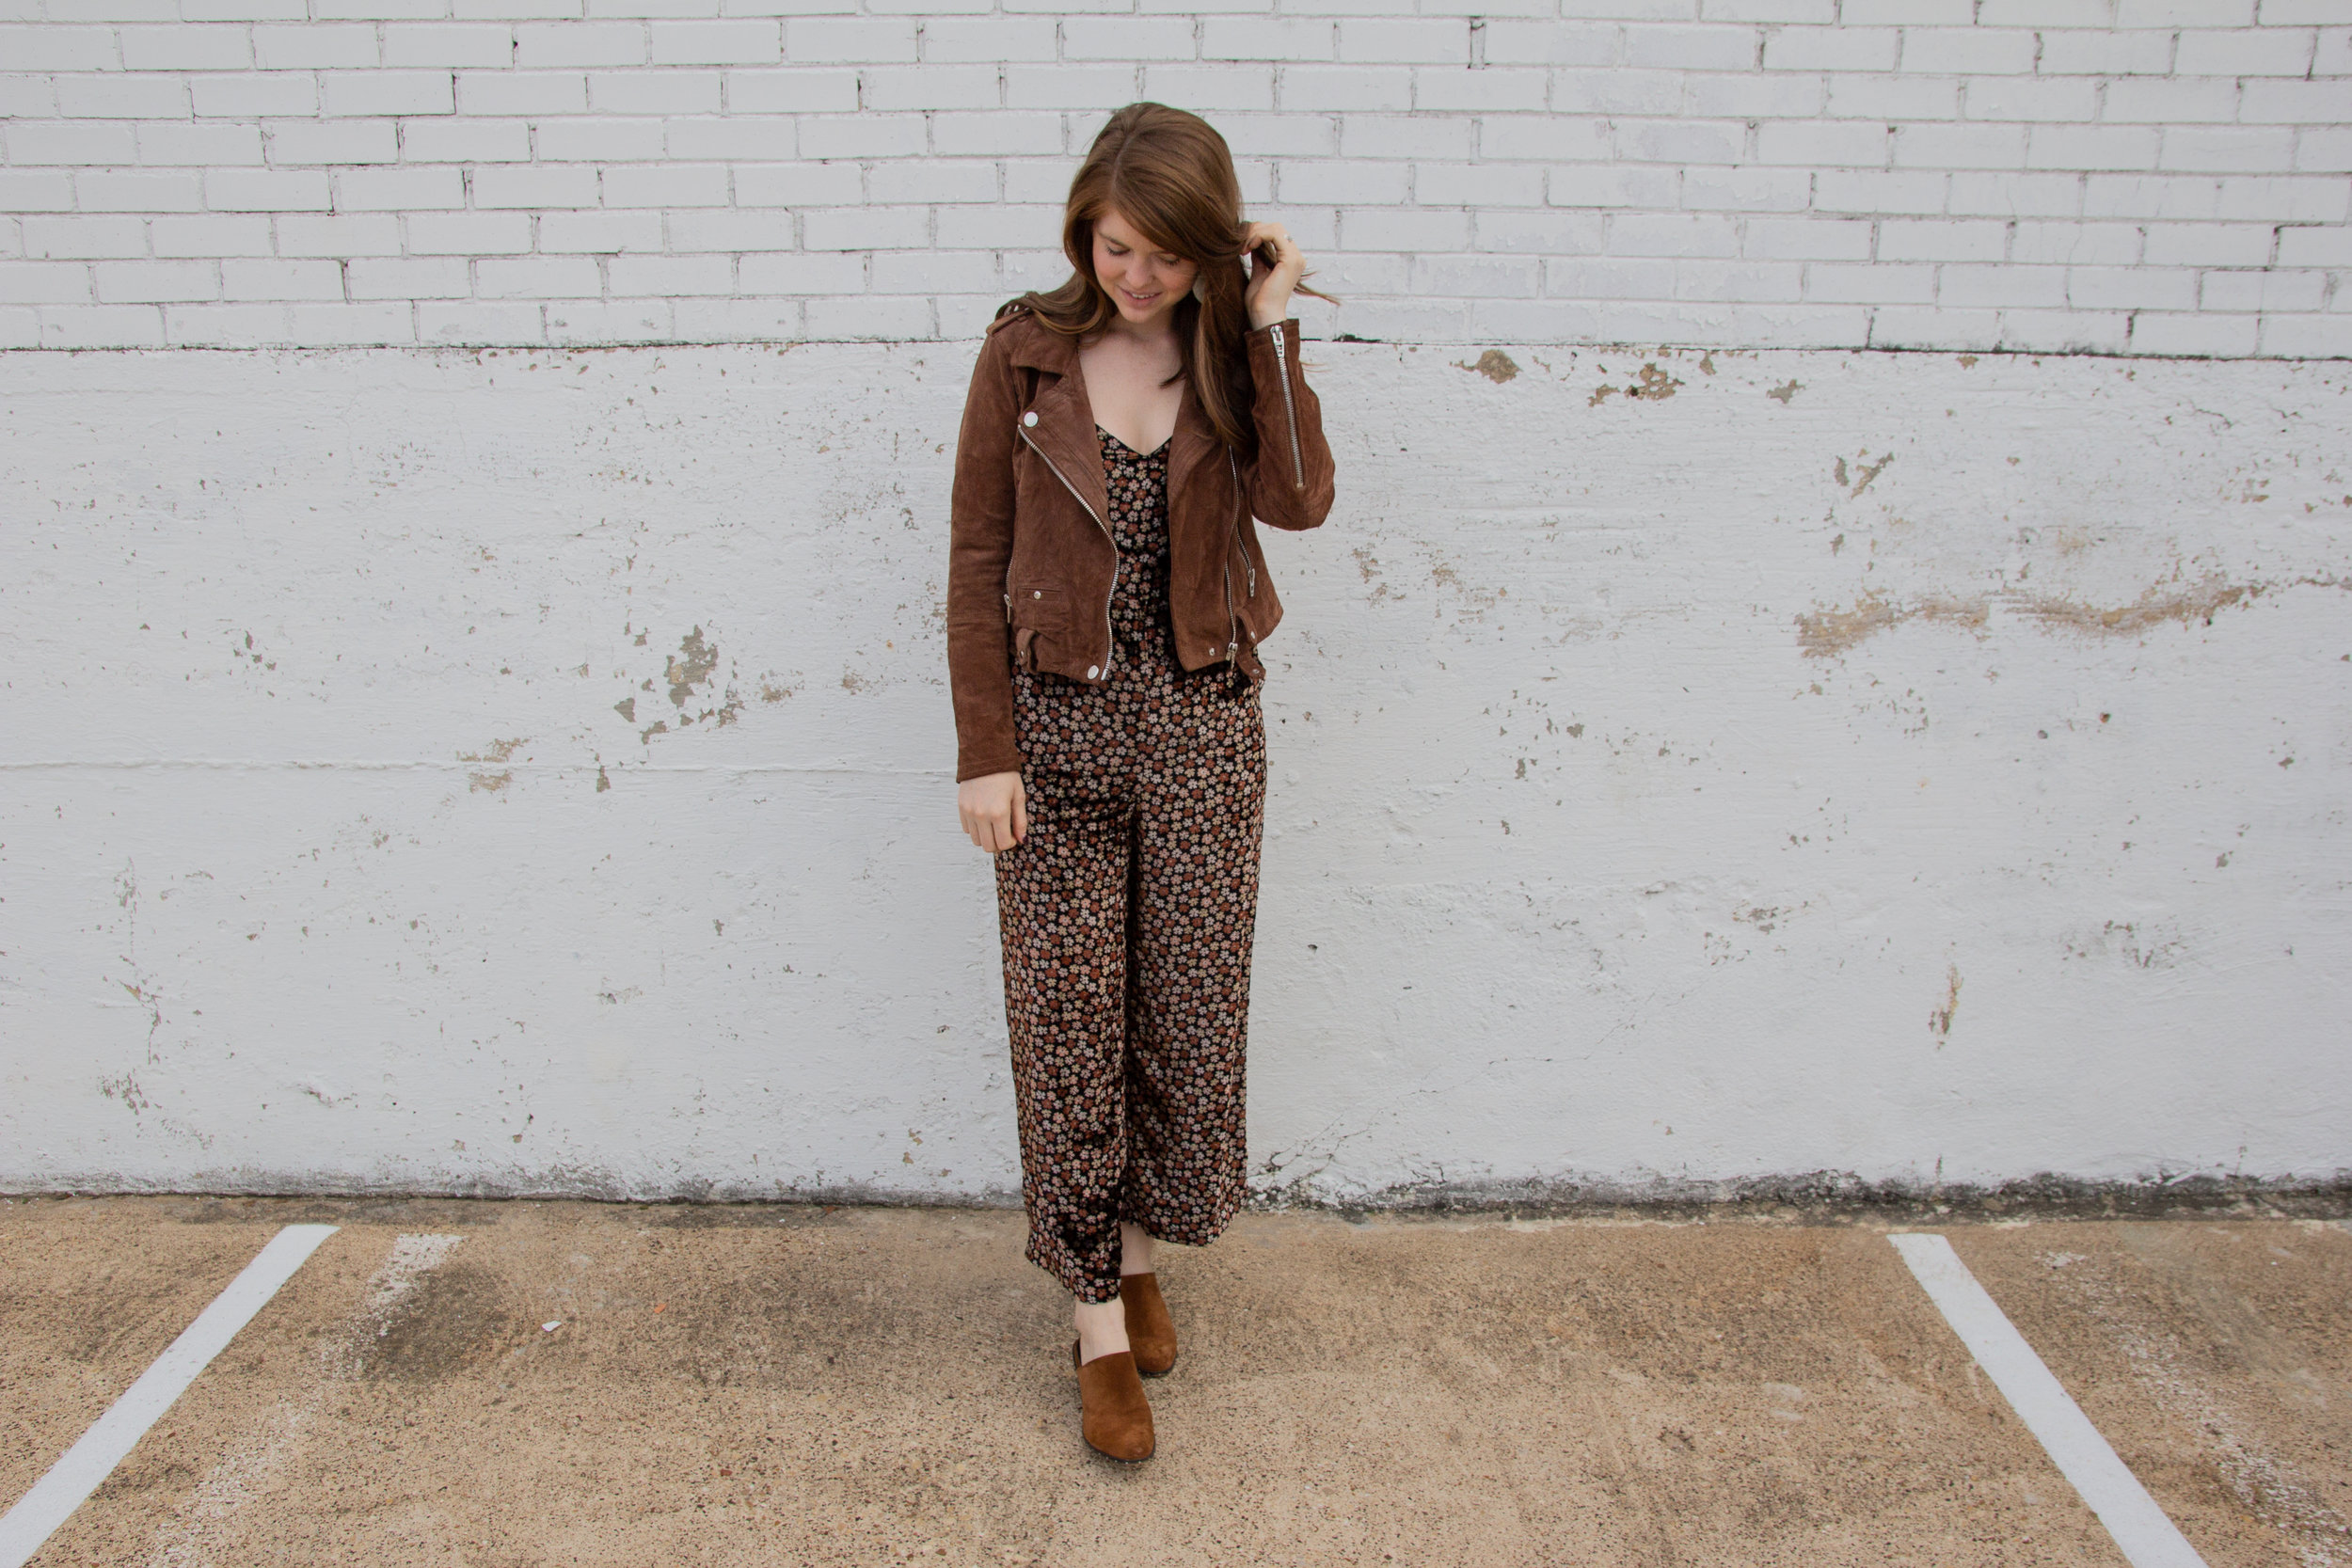 madewell velvet thistle cami jumpsuit, kendra scott diane earrings, the art of versatility velvet jumpsuit 3 ways, holiday party outfit idea, what to wear to a christmas party, blanknyc suede moto jacket, rebecca minkoff galyn suede mules